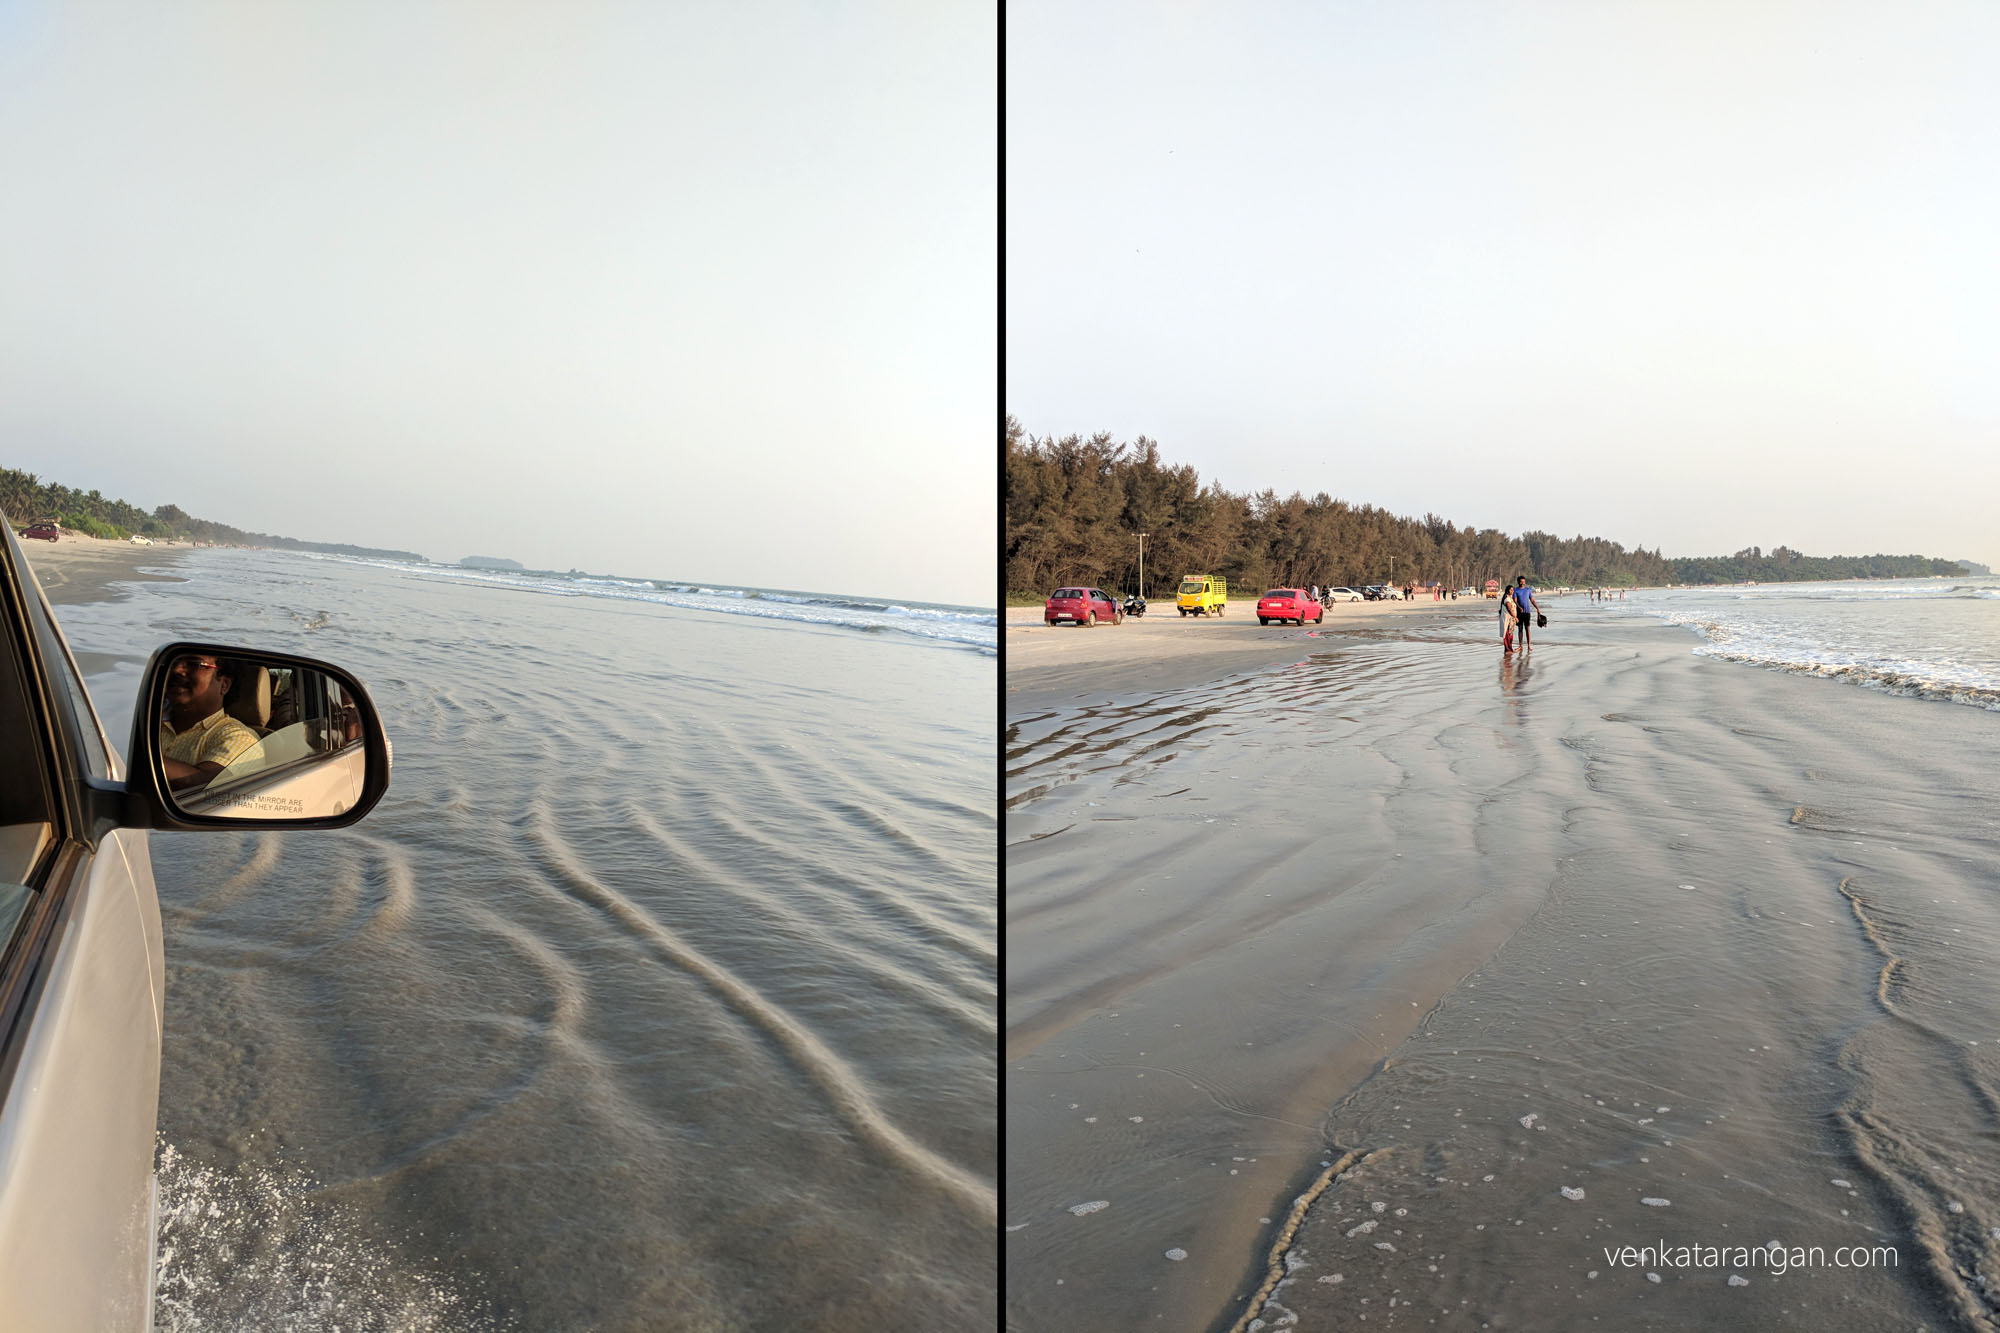 India's only drive-in beach - Muzhappilangad Beach near Kannur